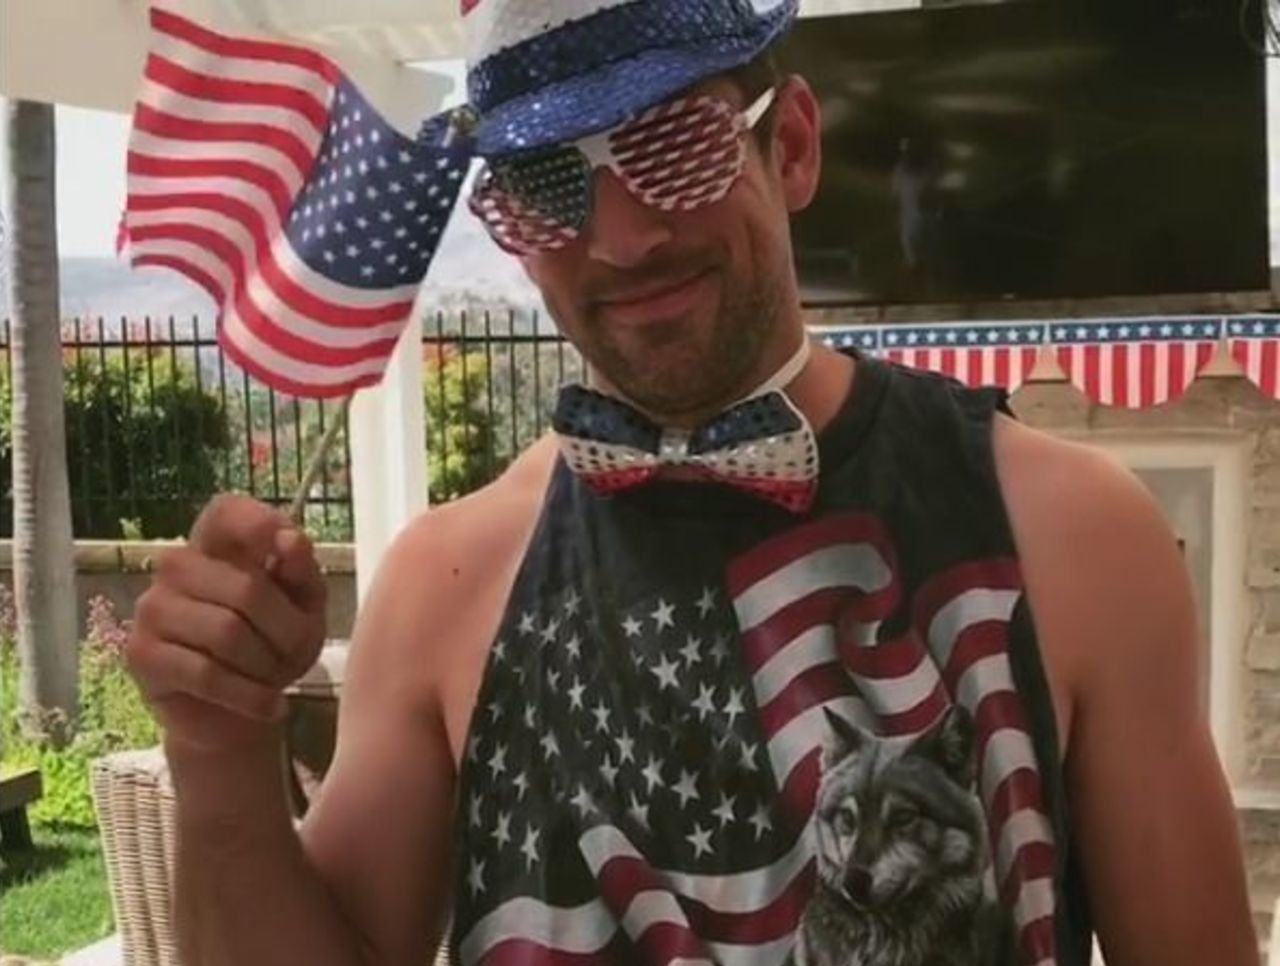 Aaron Rodgers posting this video to Instagram on the 4th is amazing.